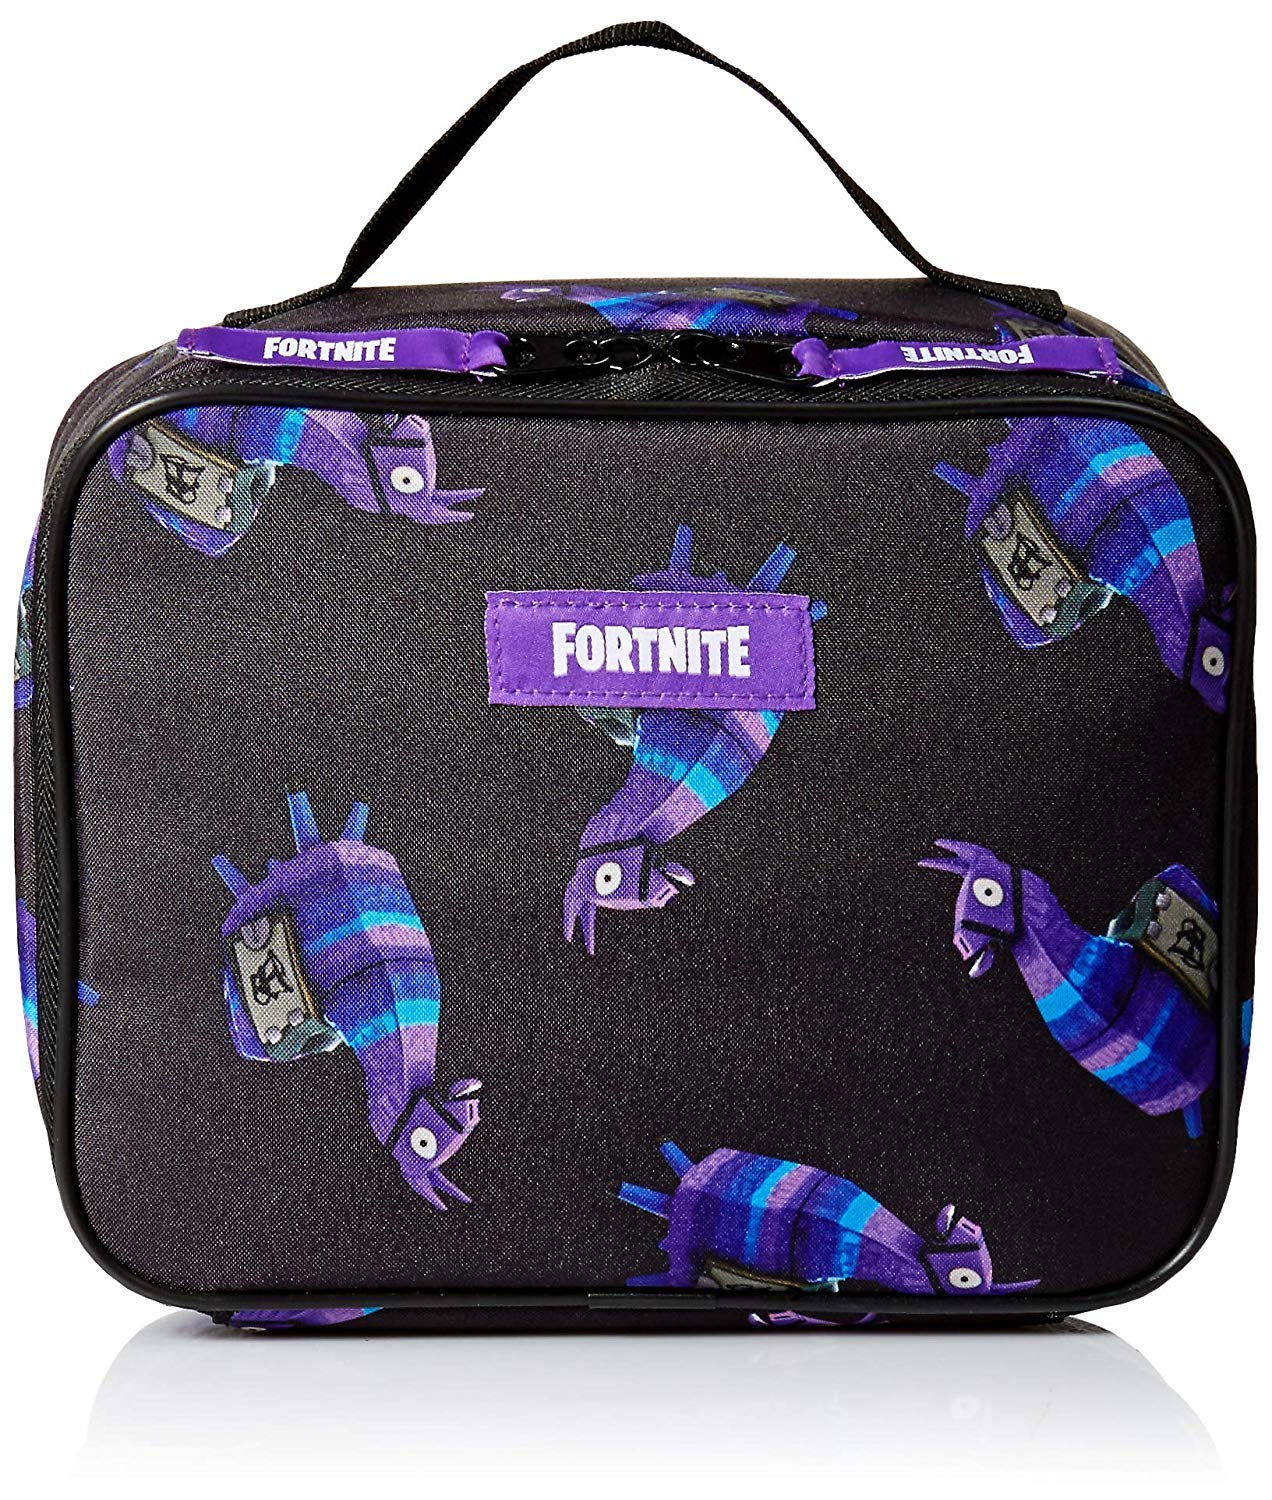 FORTNITE Kids' Little Amplify Lunch Kit, black Combo, Youth Size by Fortnite